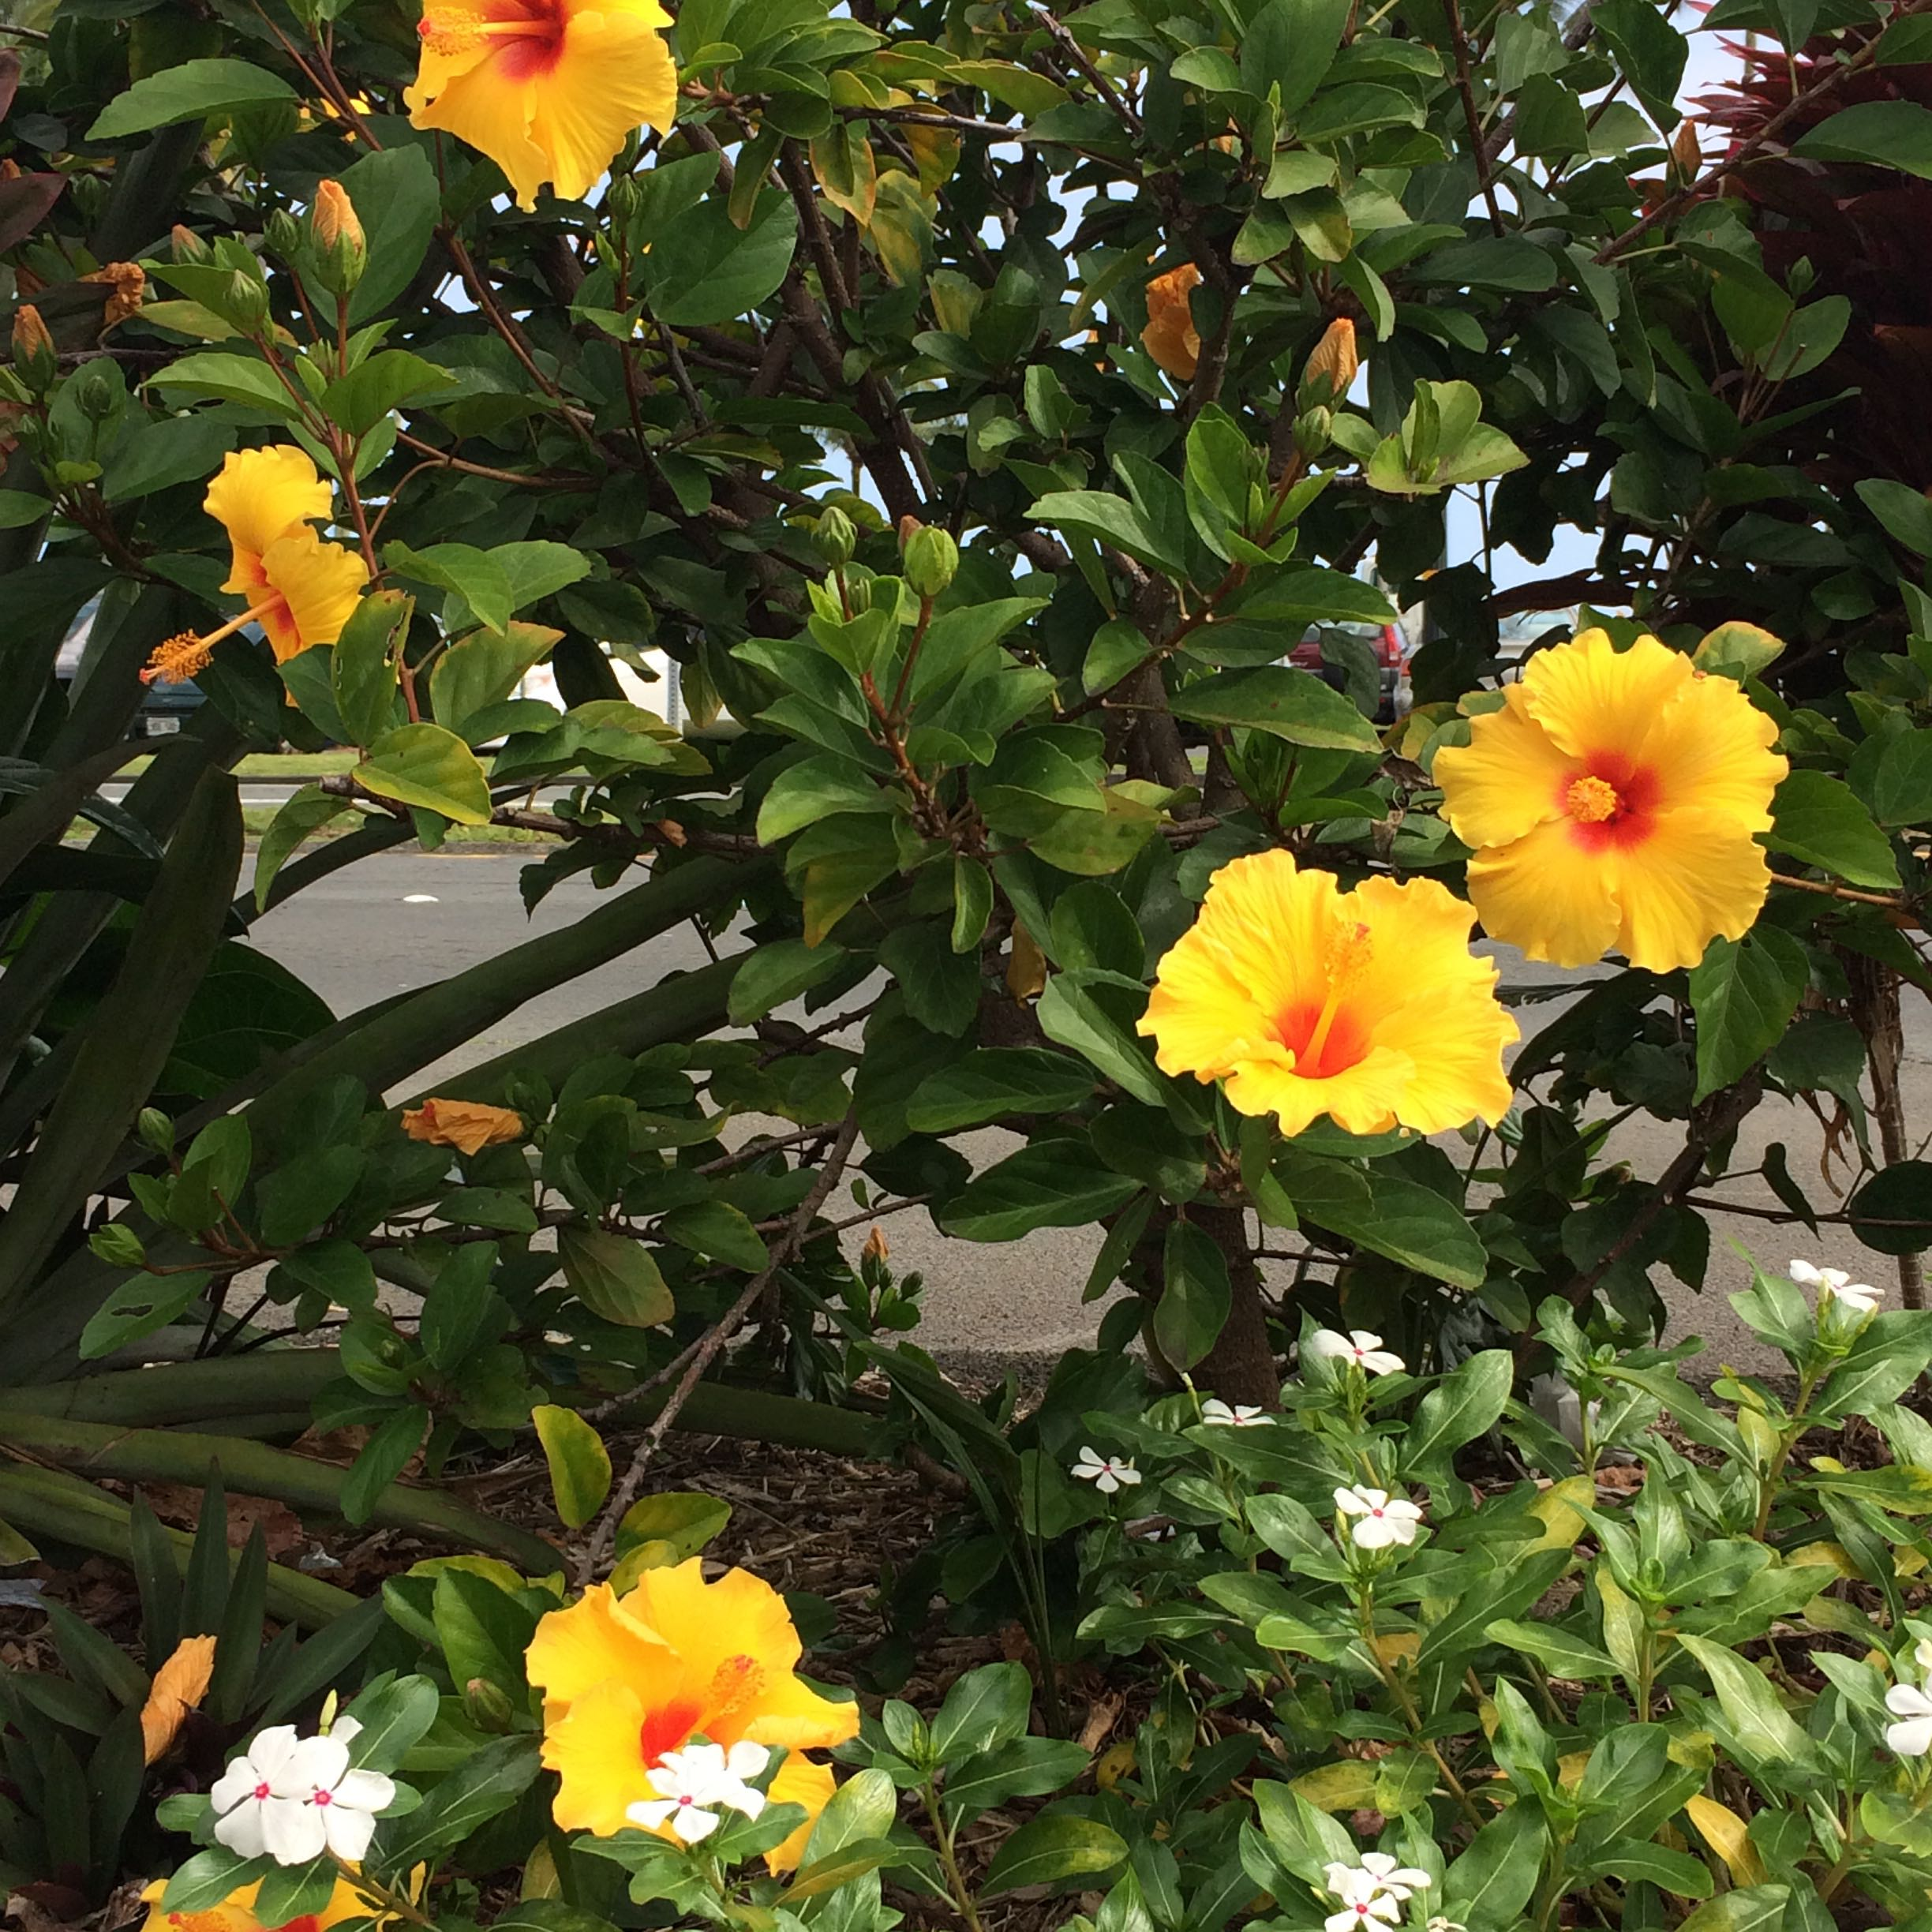 Yellow_Flowers_1056.jpg